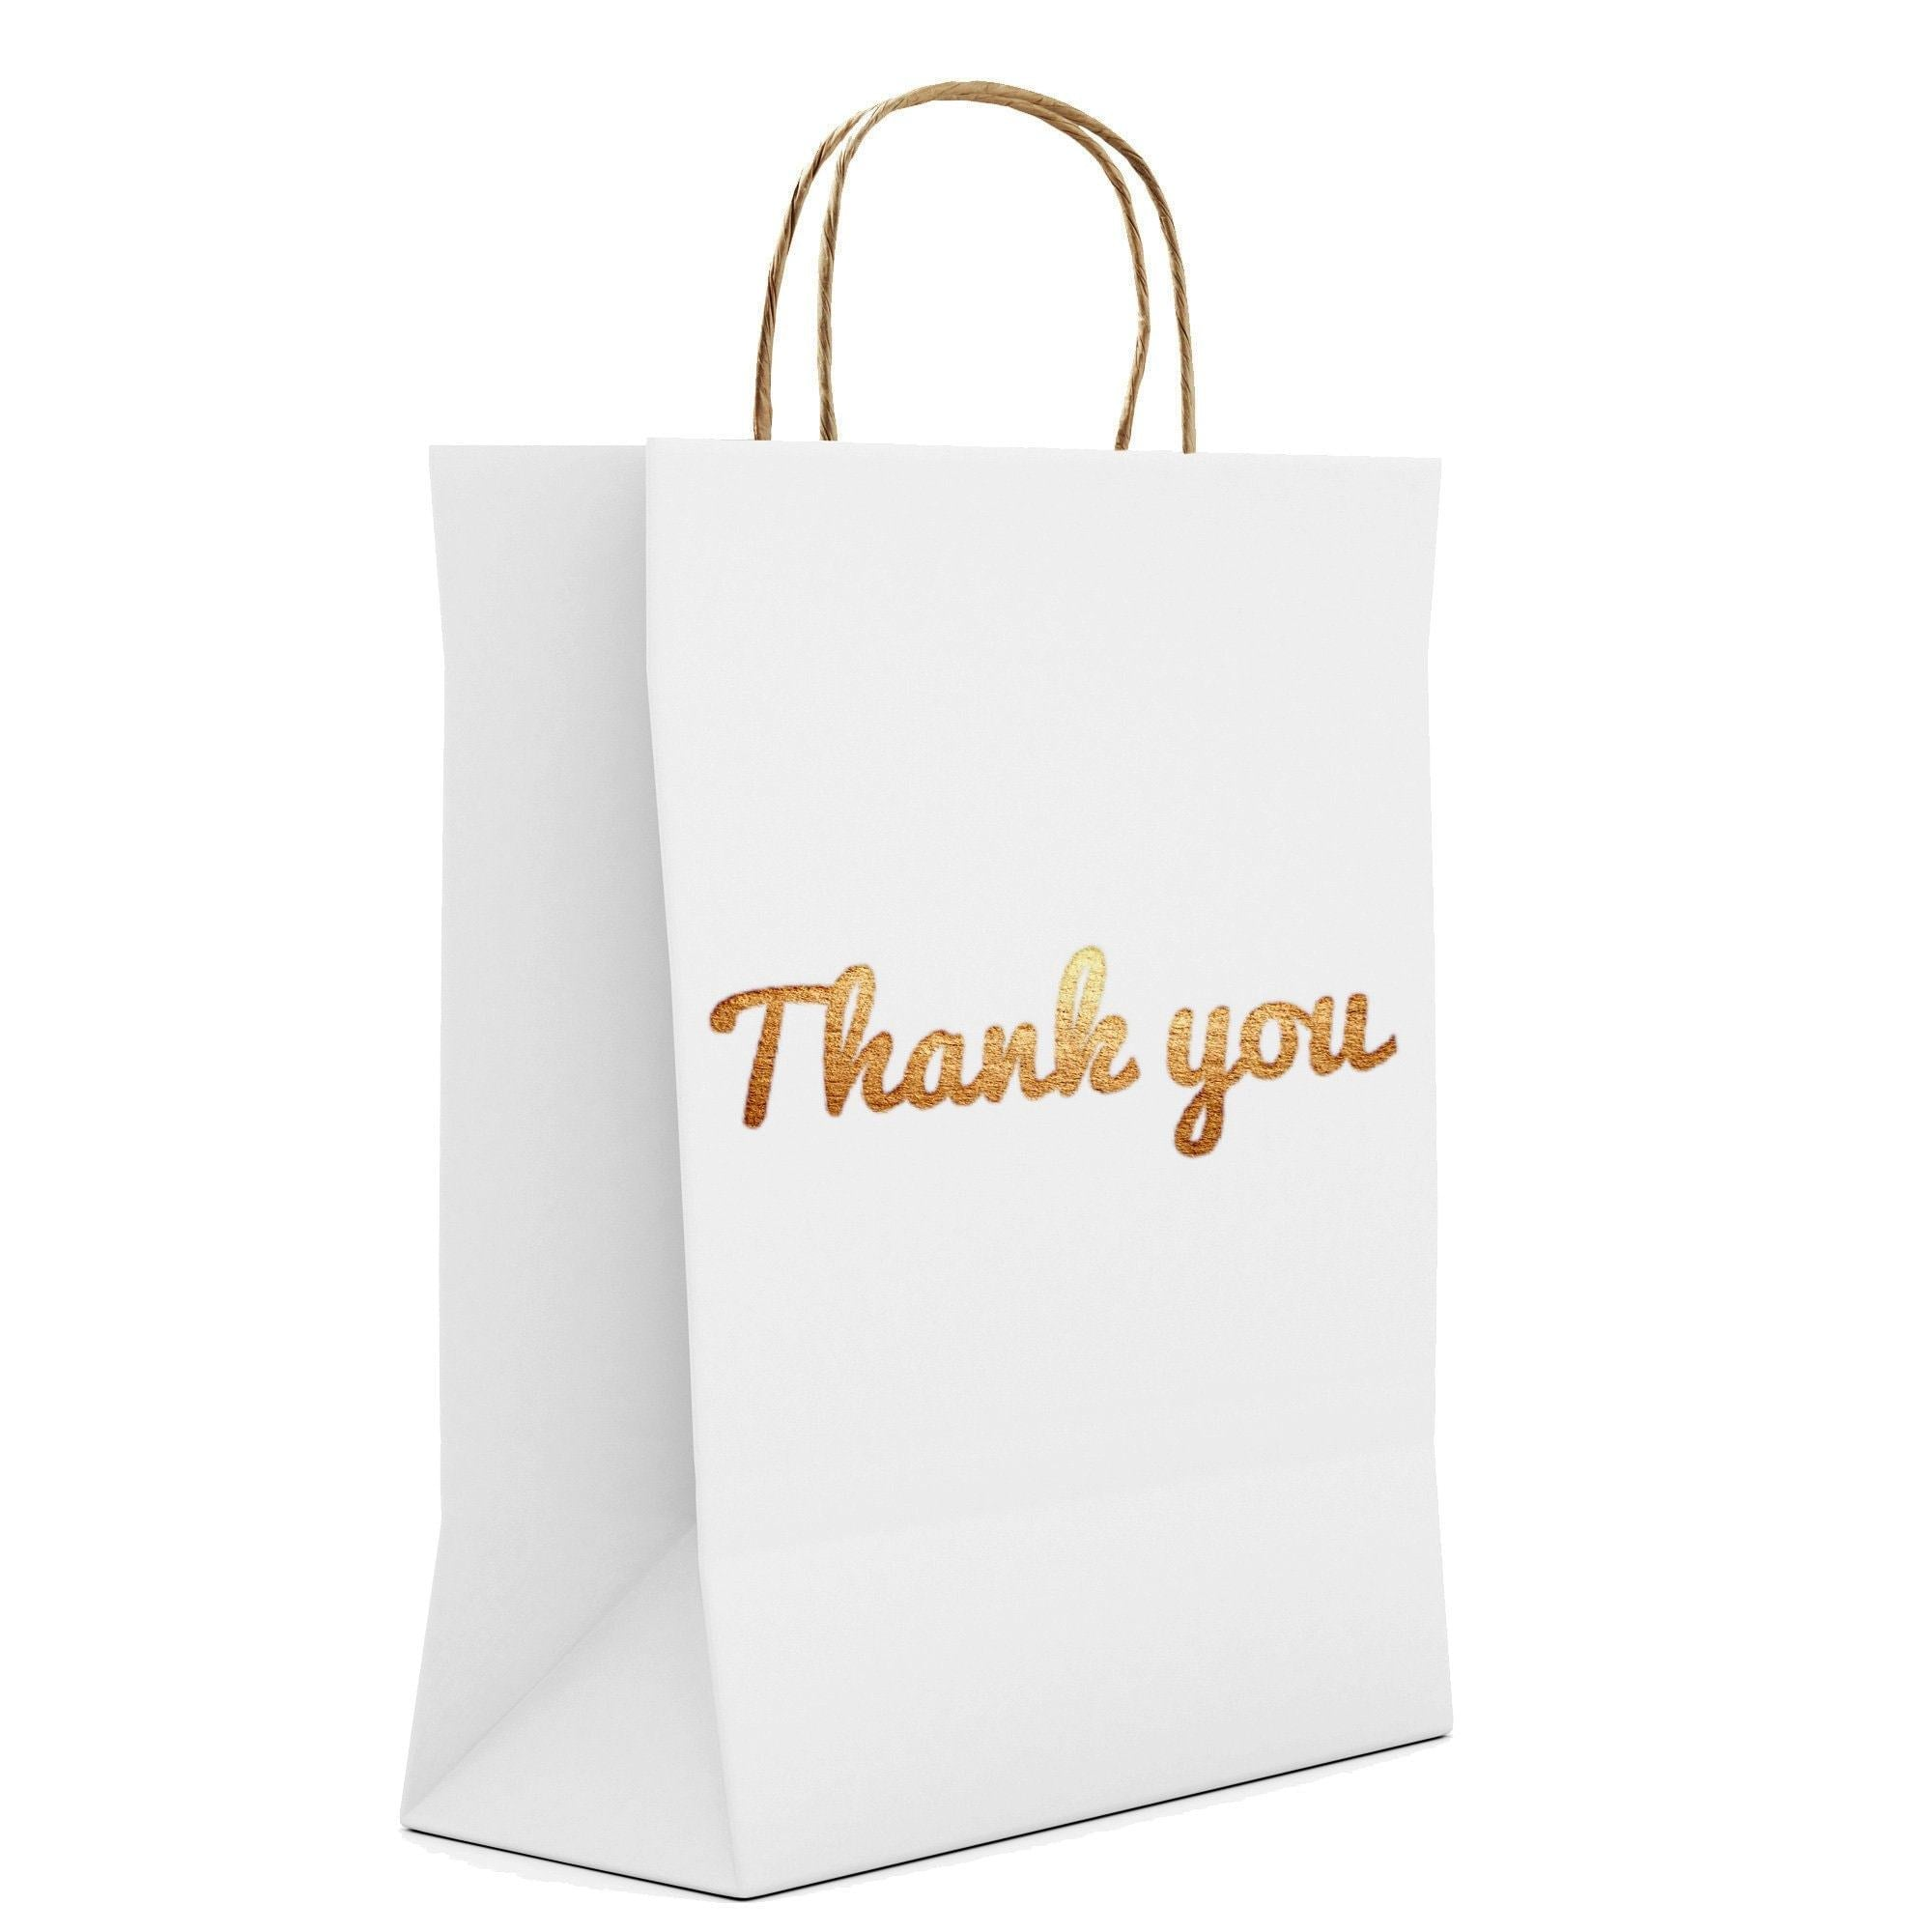 "Gold Foil White Thank You Gift Bags - Thick / Super High Quality - Luxury Pack - 10.5"" x 8.25"" - Gold Print on Both Sides"